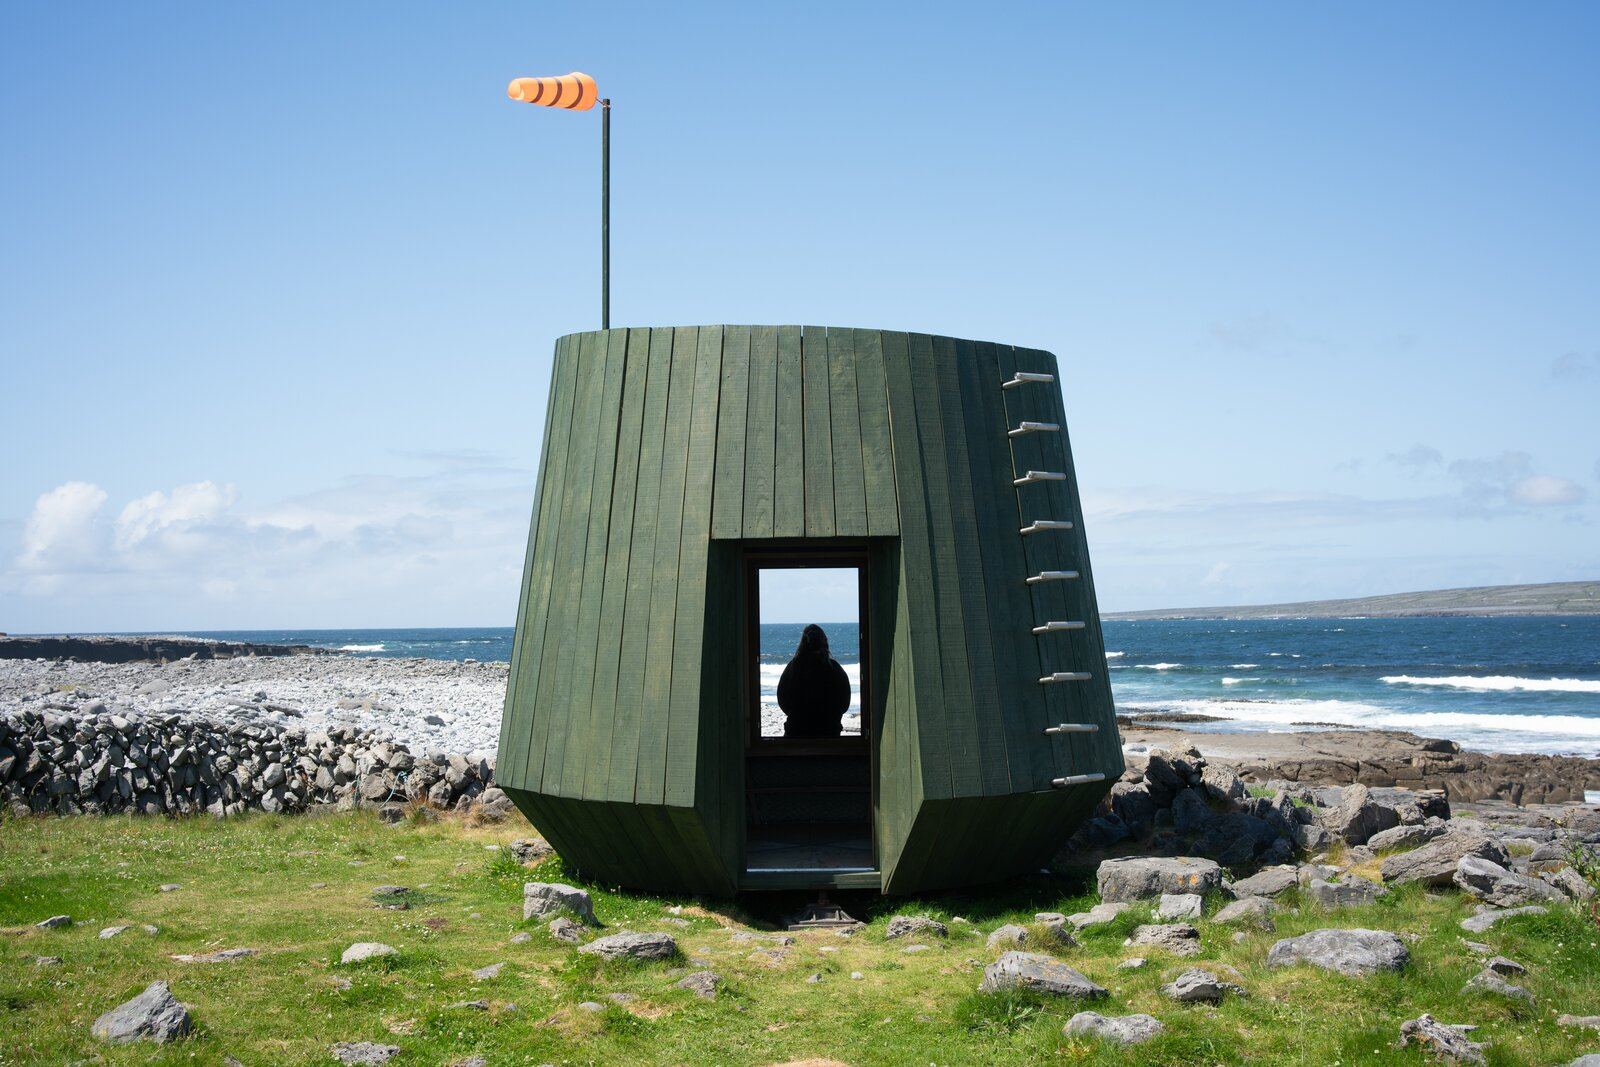 Photo 9 of 12 in An Off-Grid Artist's Retreat Pops Up on an Island Near Ireland